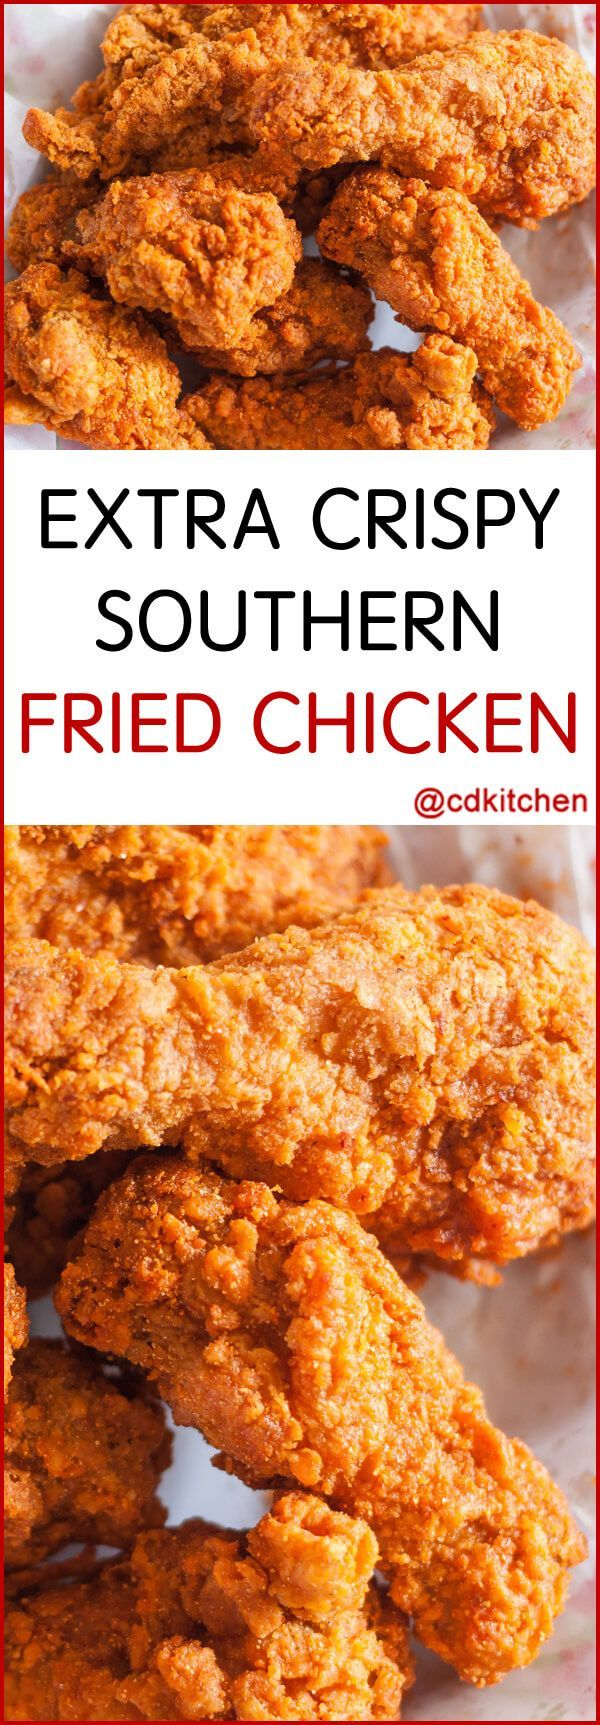 If you love a crispy coating on your fried chicken then this southern-style recipe is a must-try. Can be made stove-top or in a deep-fryer.   CDKitchen.com